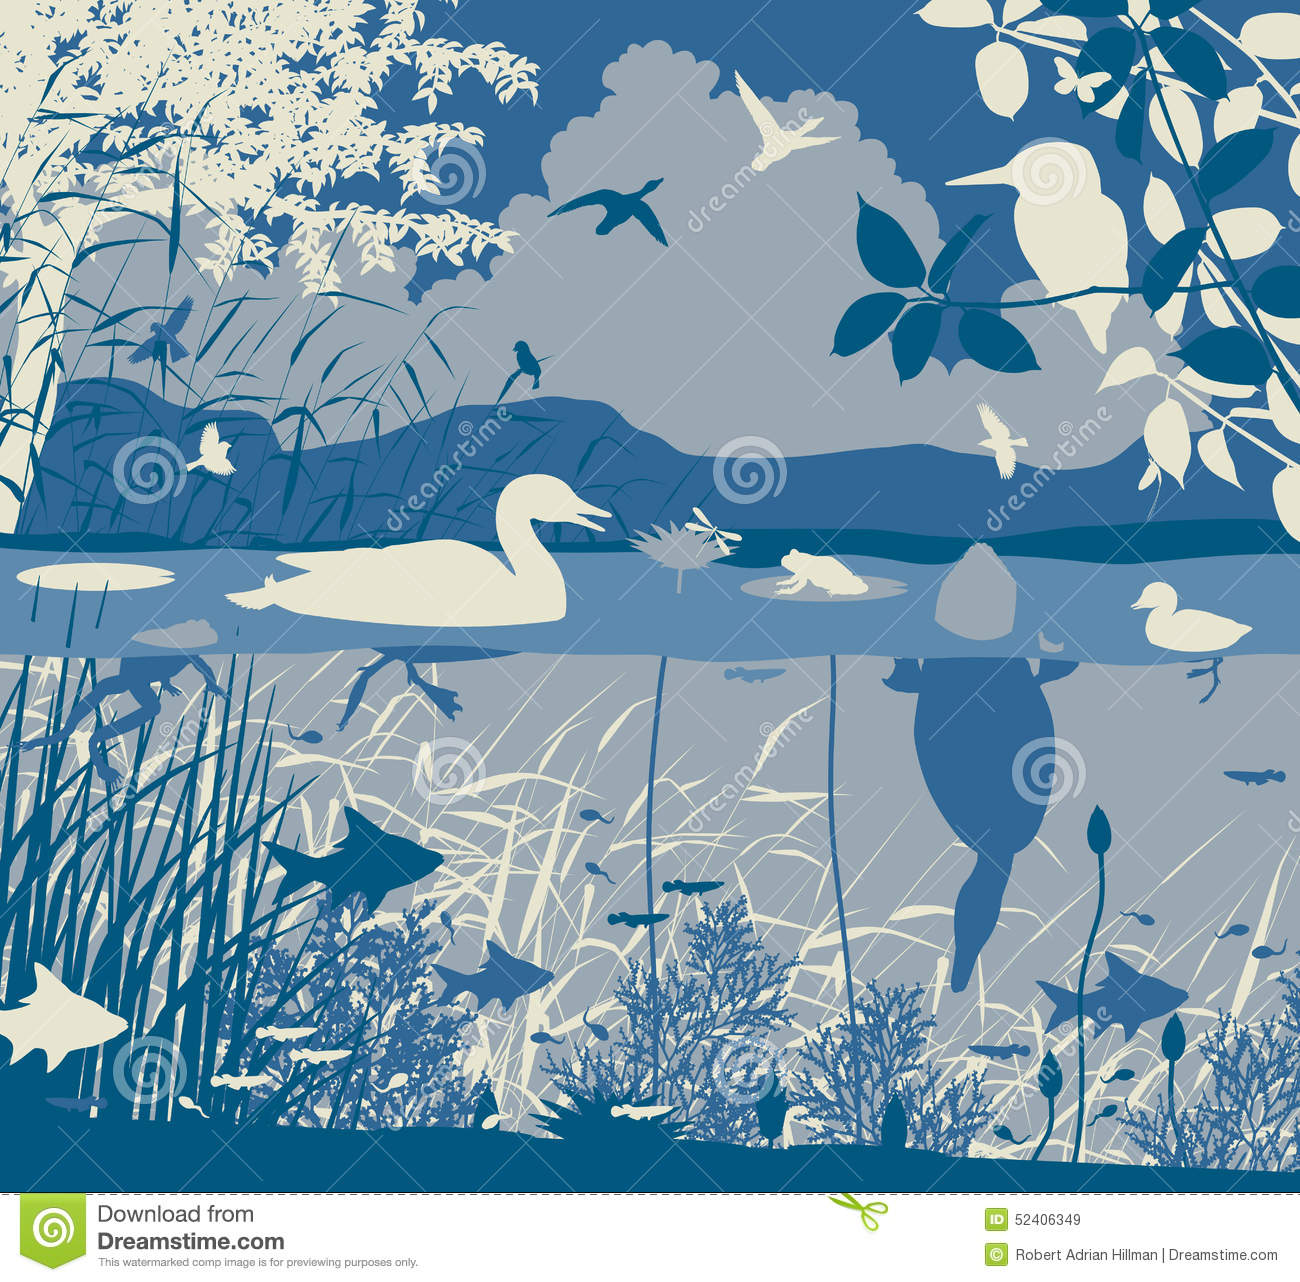 Freshwater Birds clipart #13, Download drawings